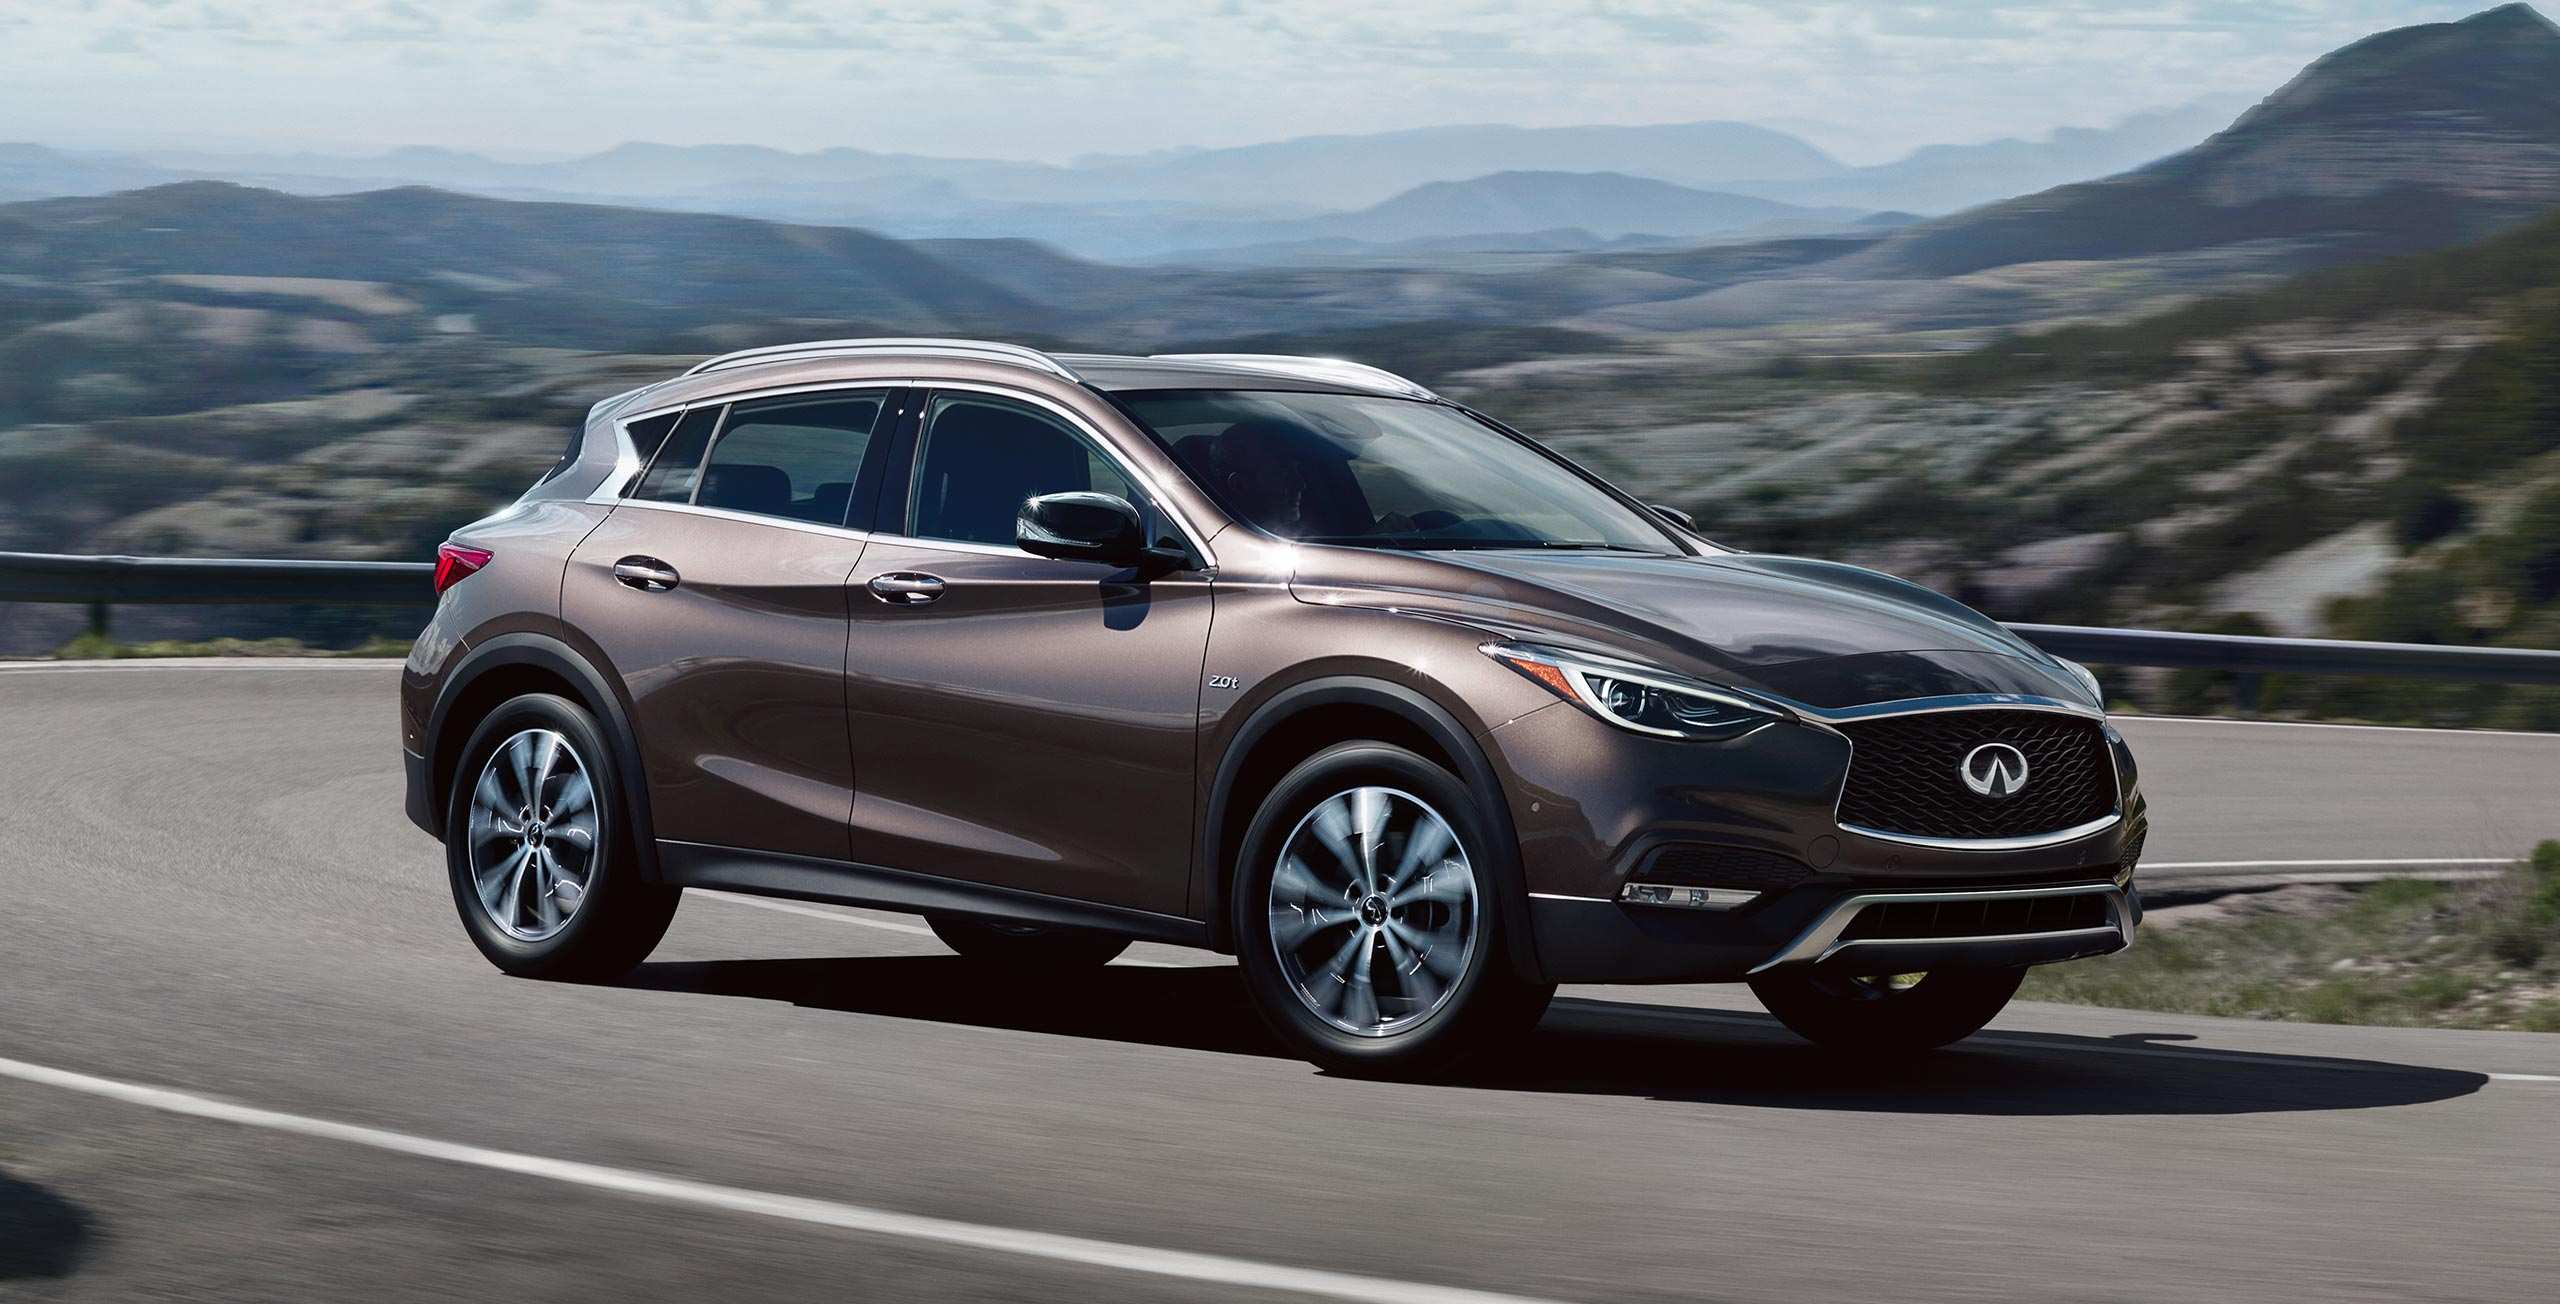 15 New New Infiniti 2019 Qx30 Review Specs And Release Date History by New Infiniti 2019 Qx30 Review Specs And Release Date